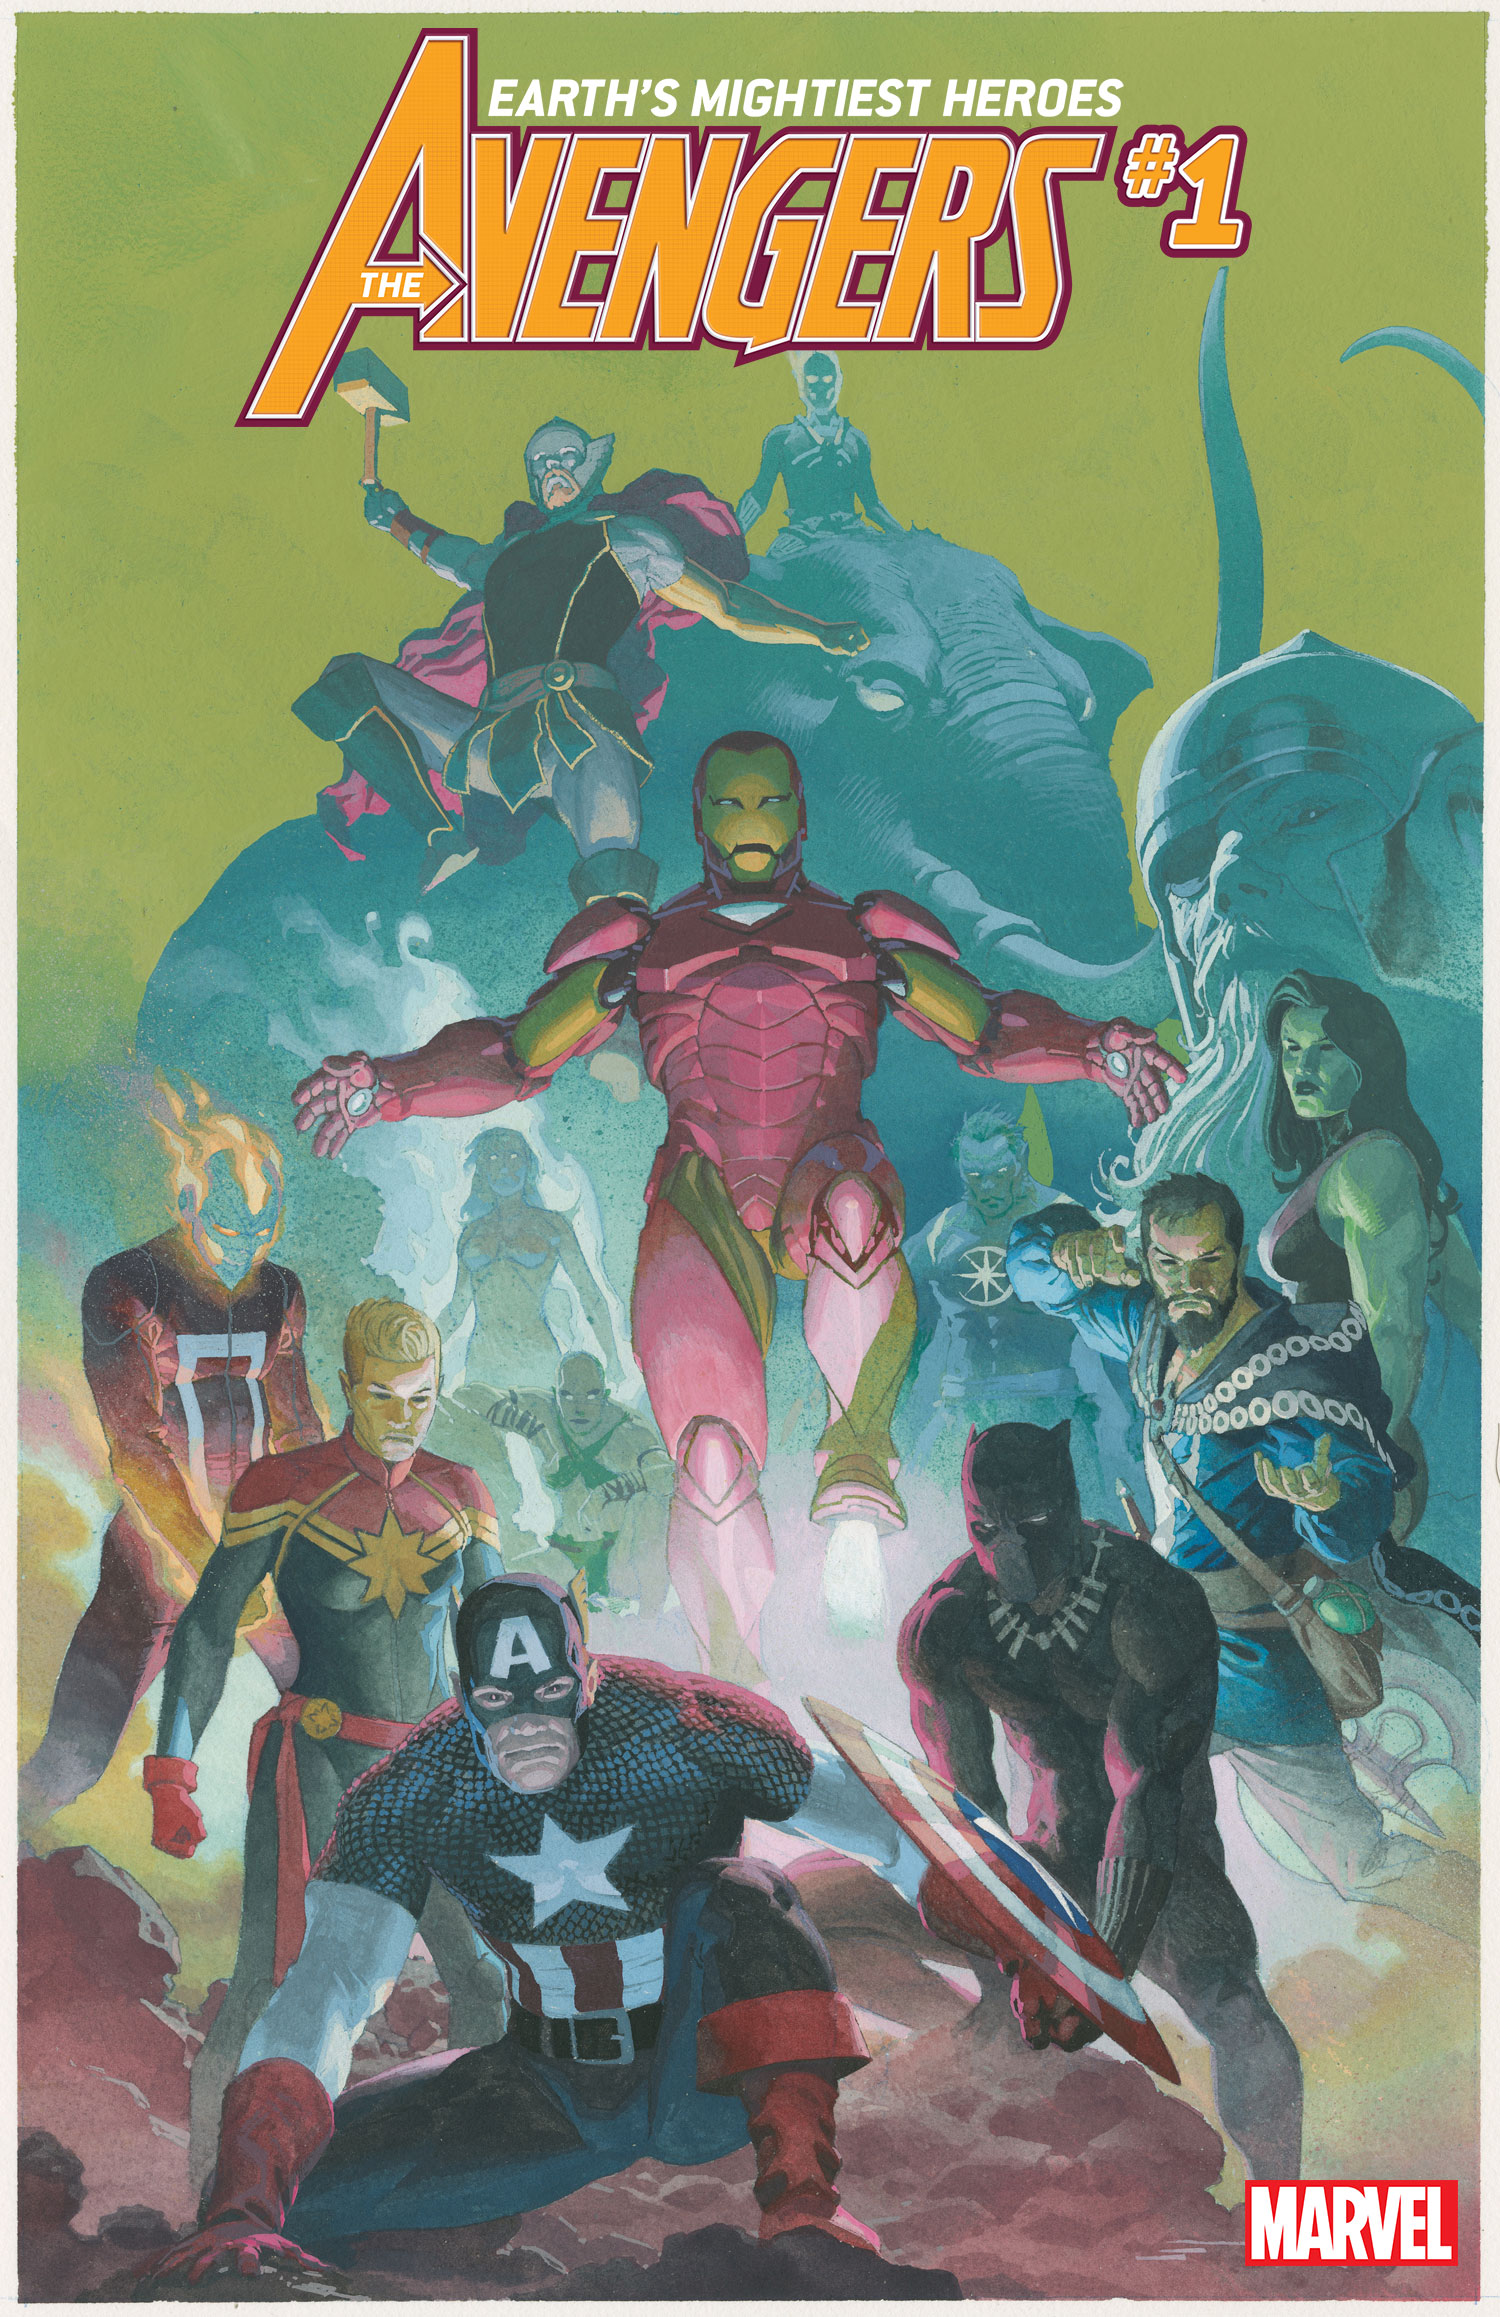 Avengers #1 Variant by Esad Ribic